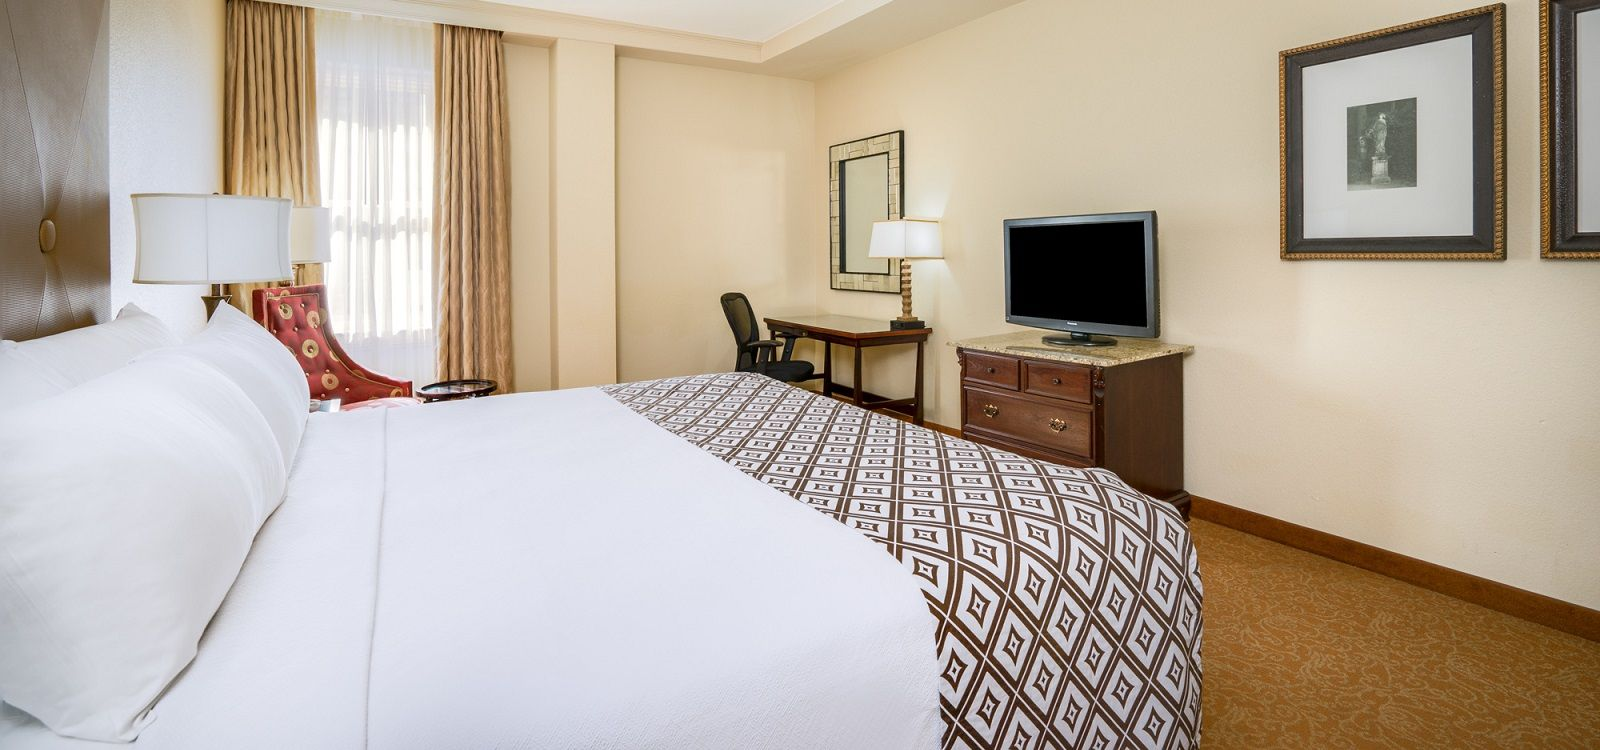 A French Quarter Hotel With Unparalleled Service Astor Crowne